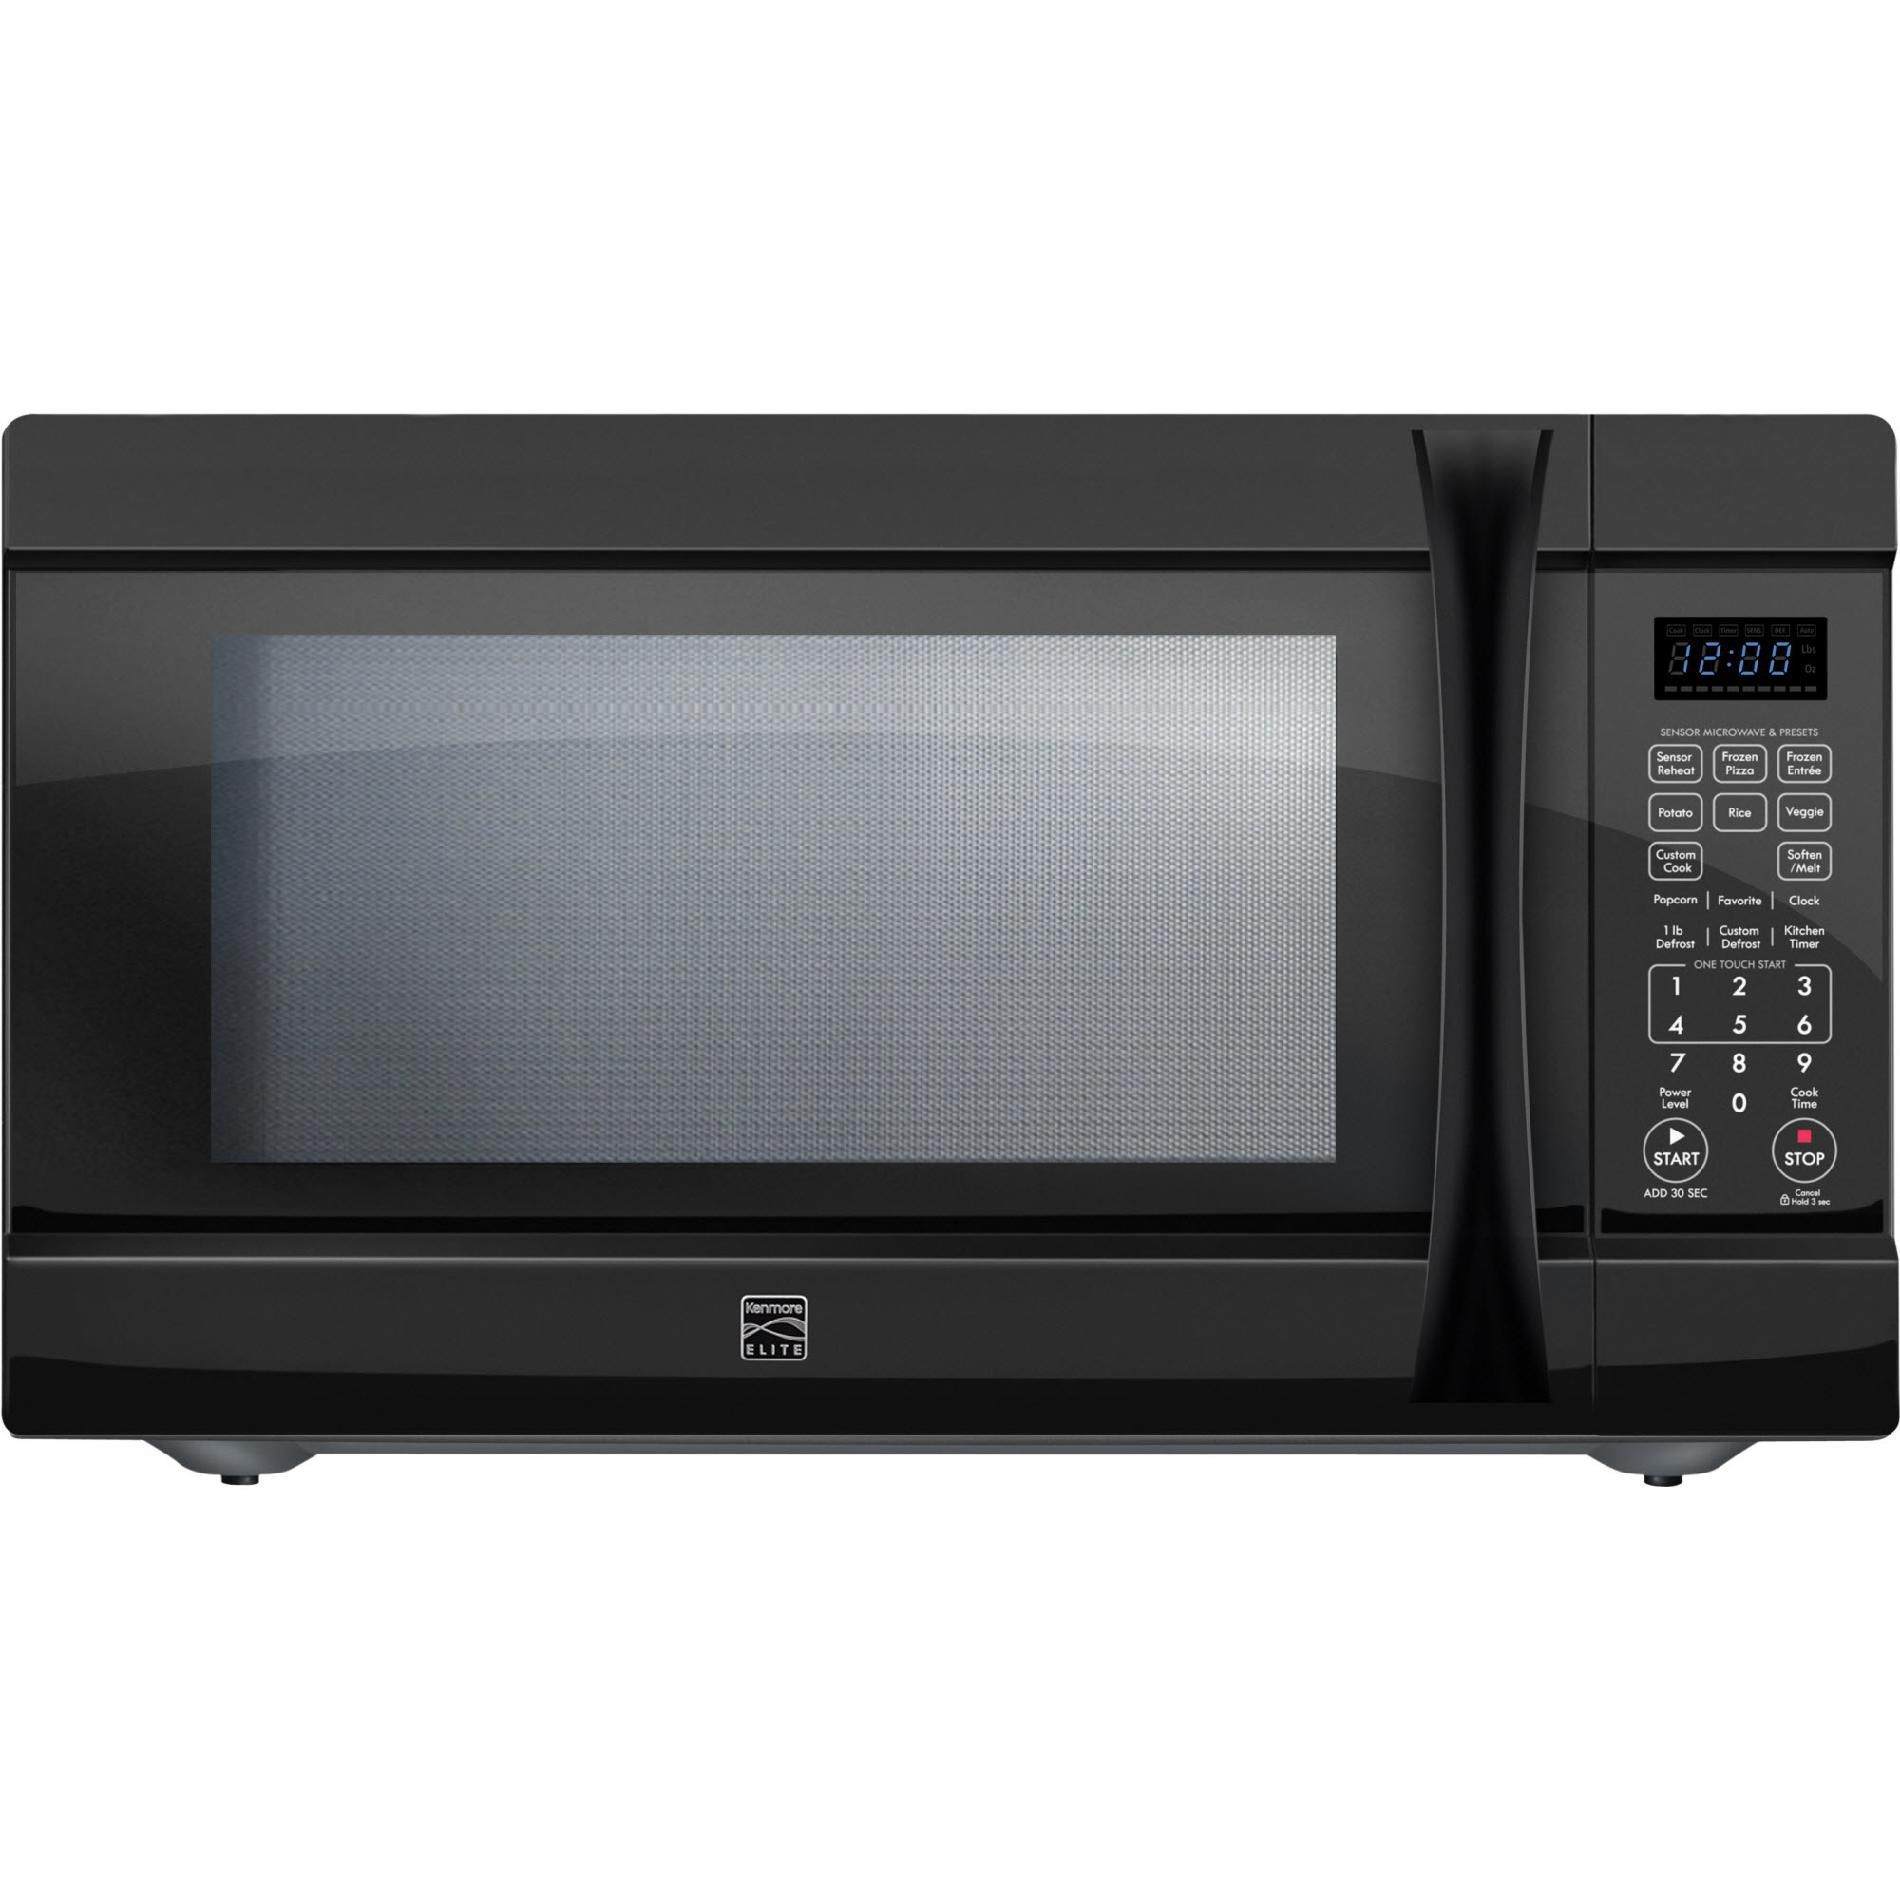 Kenmore Elite Countertop Microwave 2 2 Cu Ft 74229 Sears